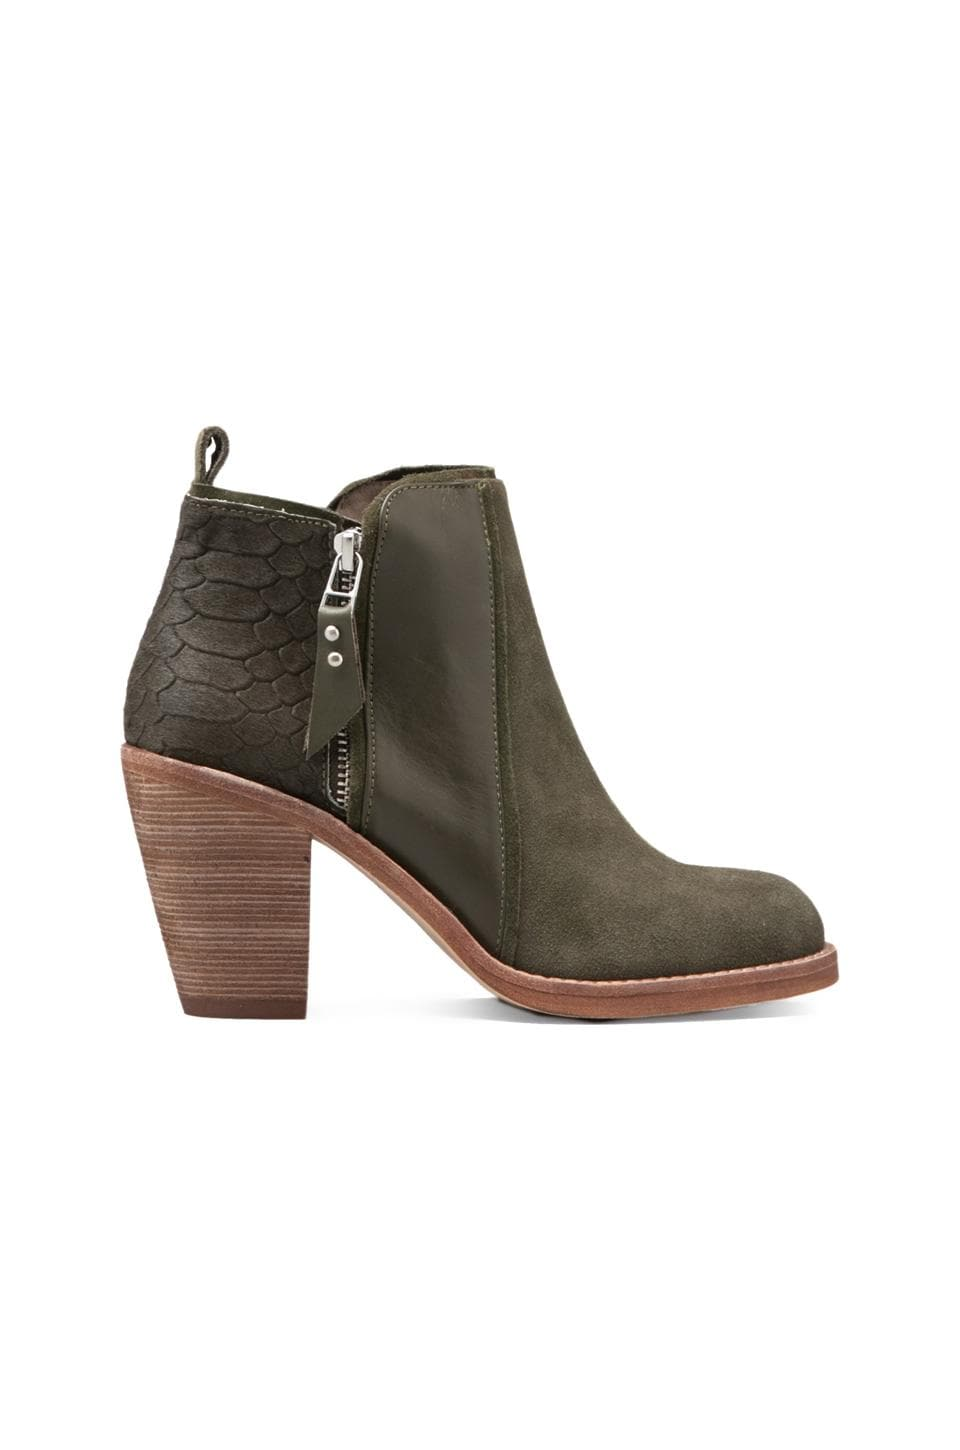 Matt Bernson Holt Bootie with Pony Hair in Moss/Moss Snake Pony